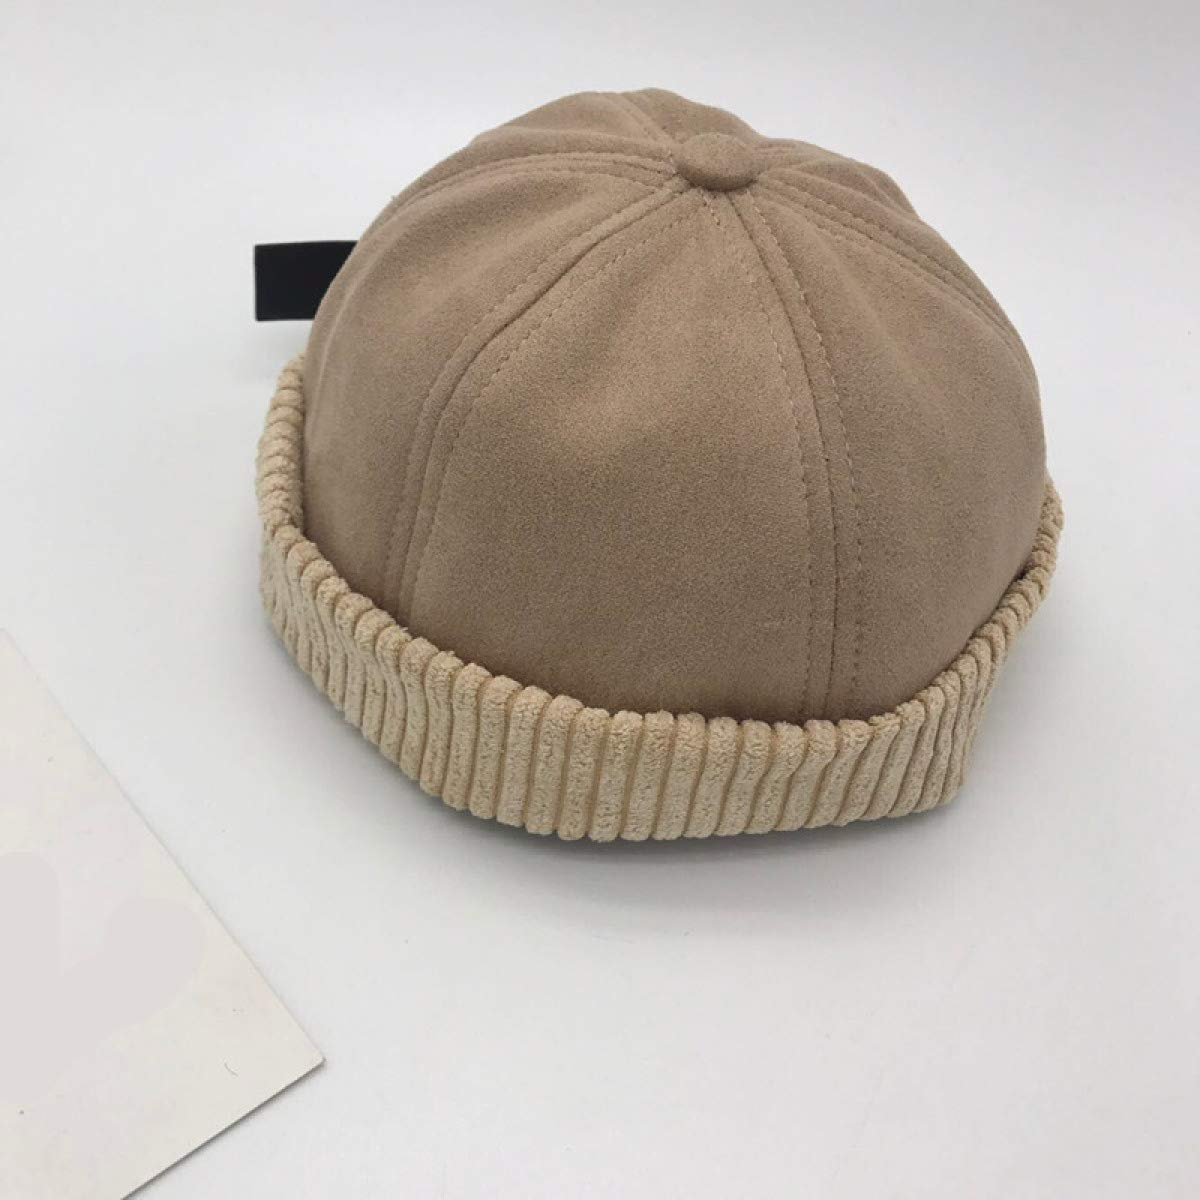 Myhome99 Style Spring Fashion Solid Color Suede Warm Wool Winter Women Men Beret French Artist Beanie pachyrhizus Cap for Female Gift Khaki